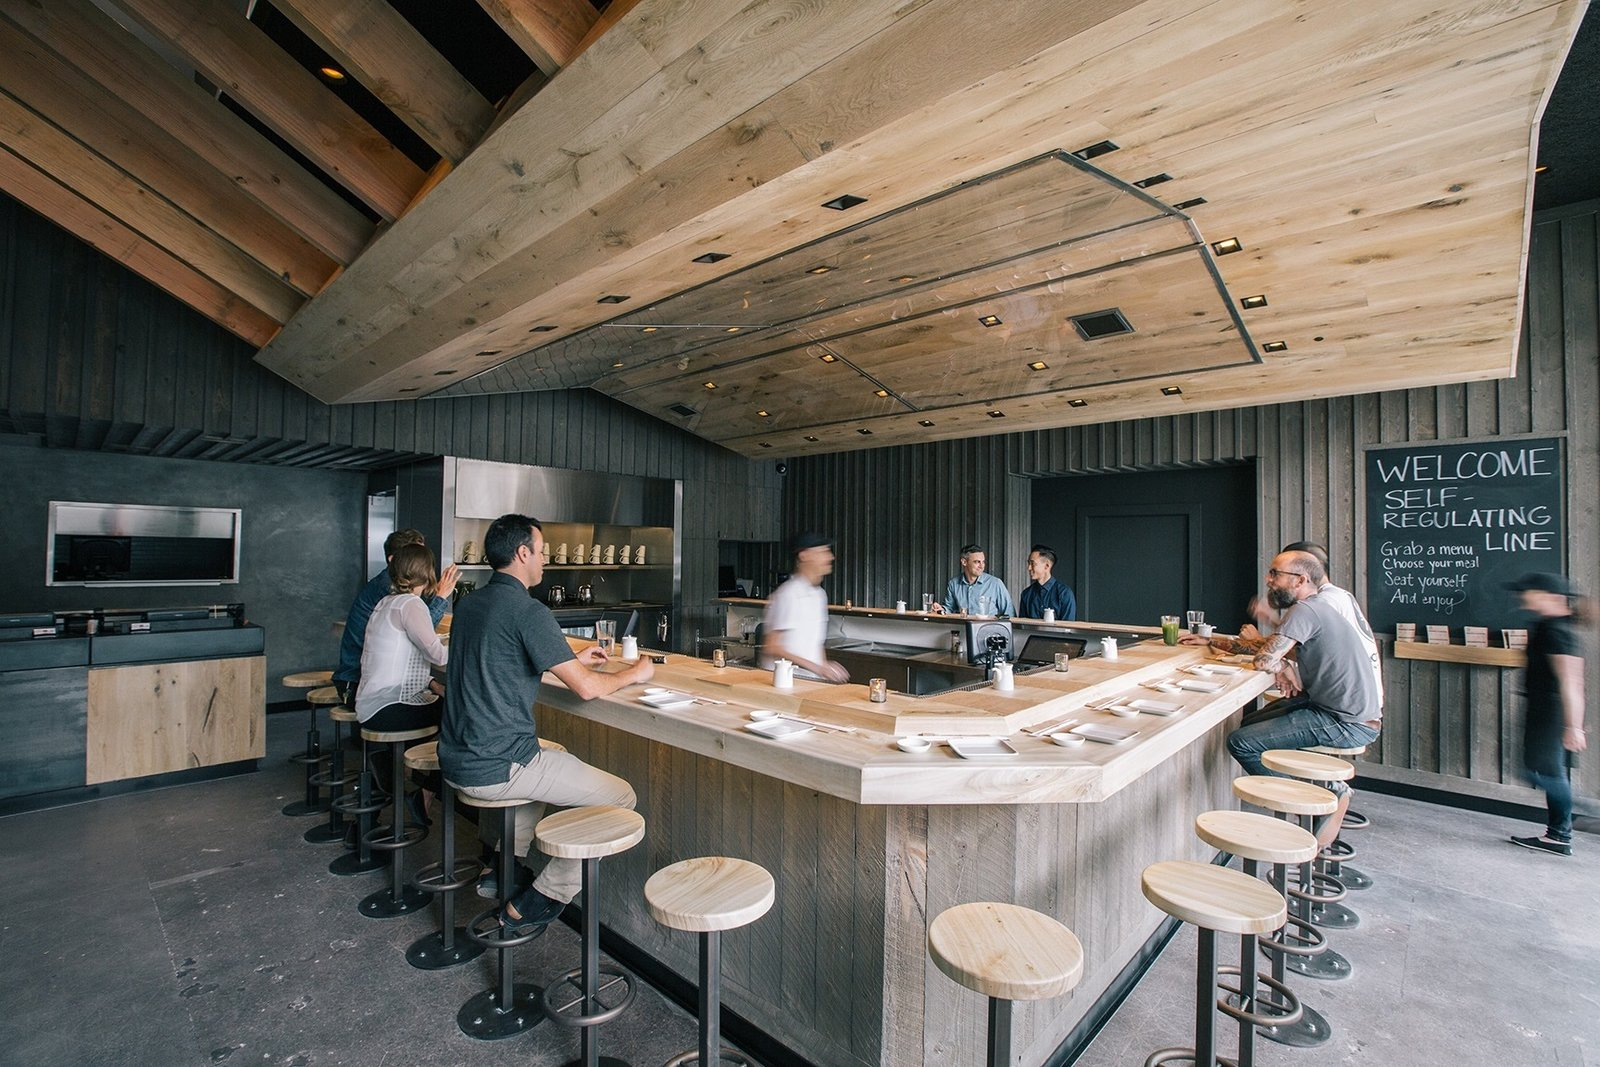 At KazuNori's new second location, Marmol Radziner built the U-shaped bar out of bleached eucalyptus wood, while the walls are made of plaster and board-and-batten wood. The sculptural dropped ceiling is constructed of bleached rustic white oak and lined with warm lighting.  Photo 2 of 5 in The Classic Hand Roll Bar Makes a Comeback at a New Los Angeles Sushi Spot